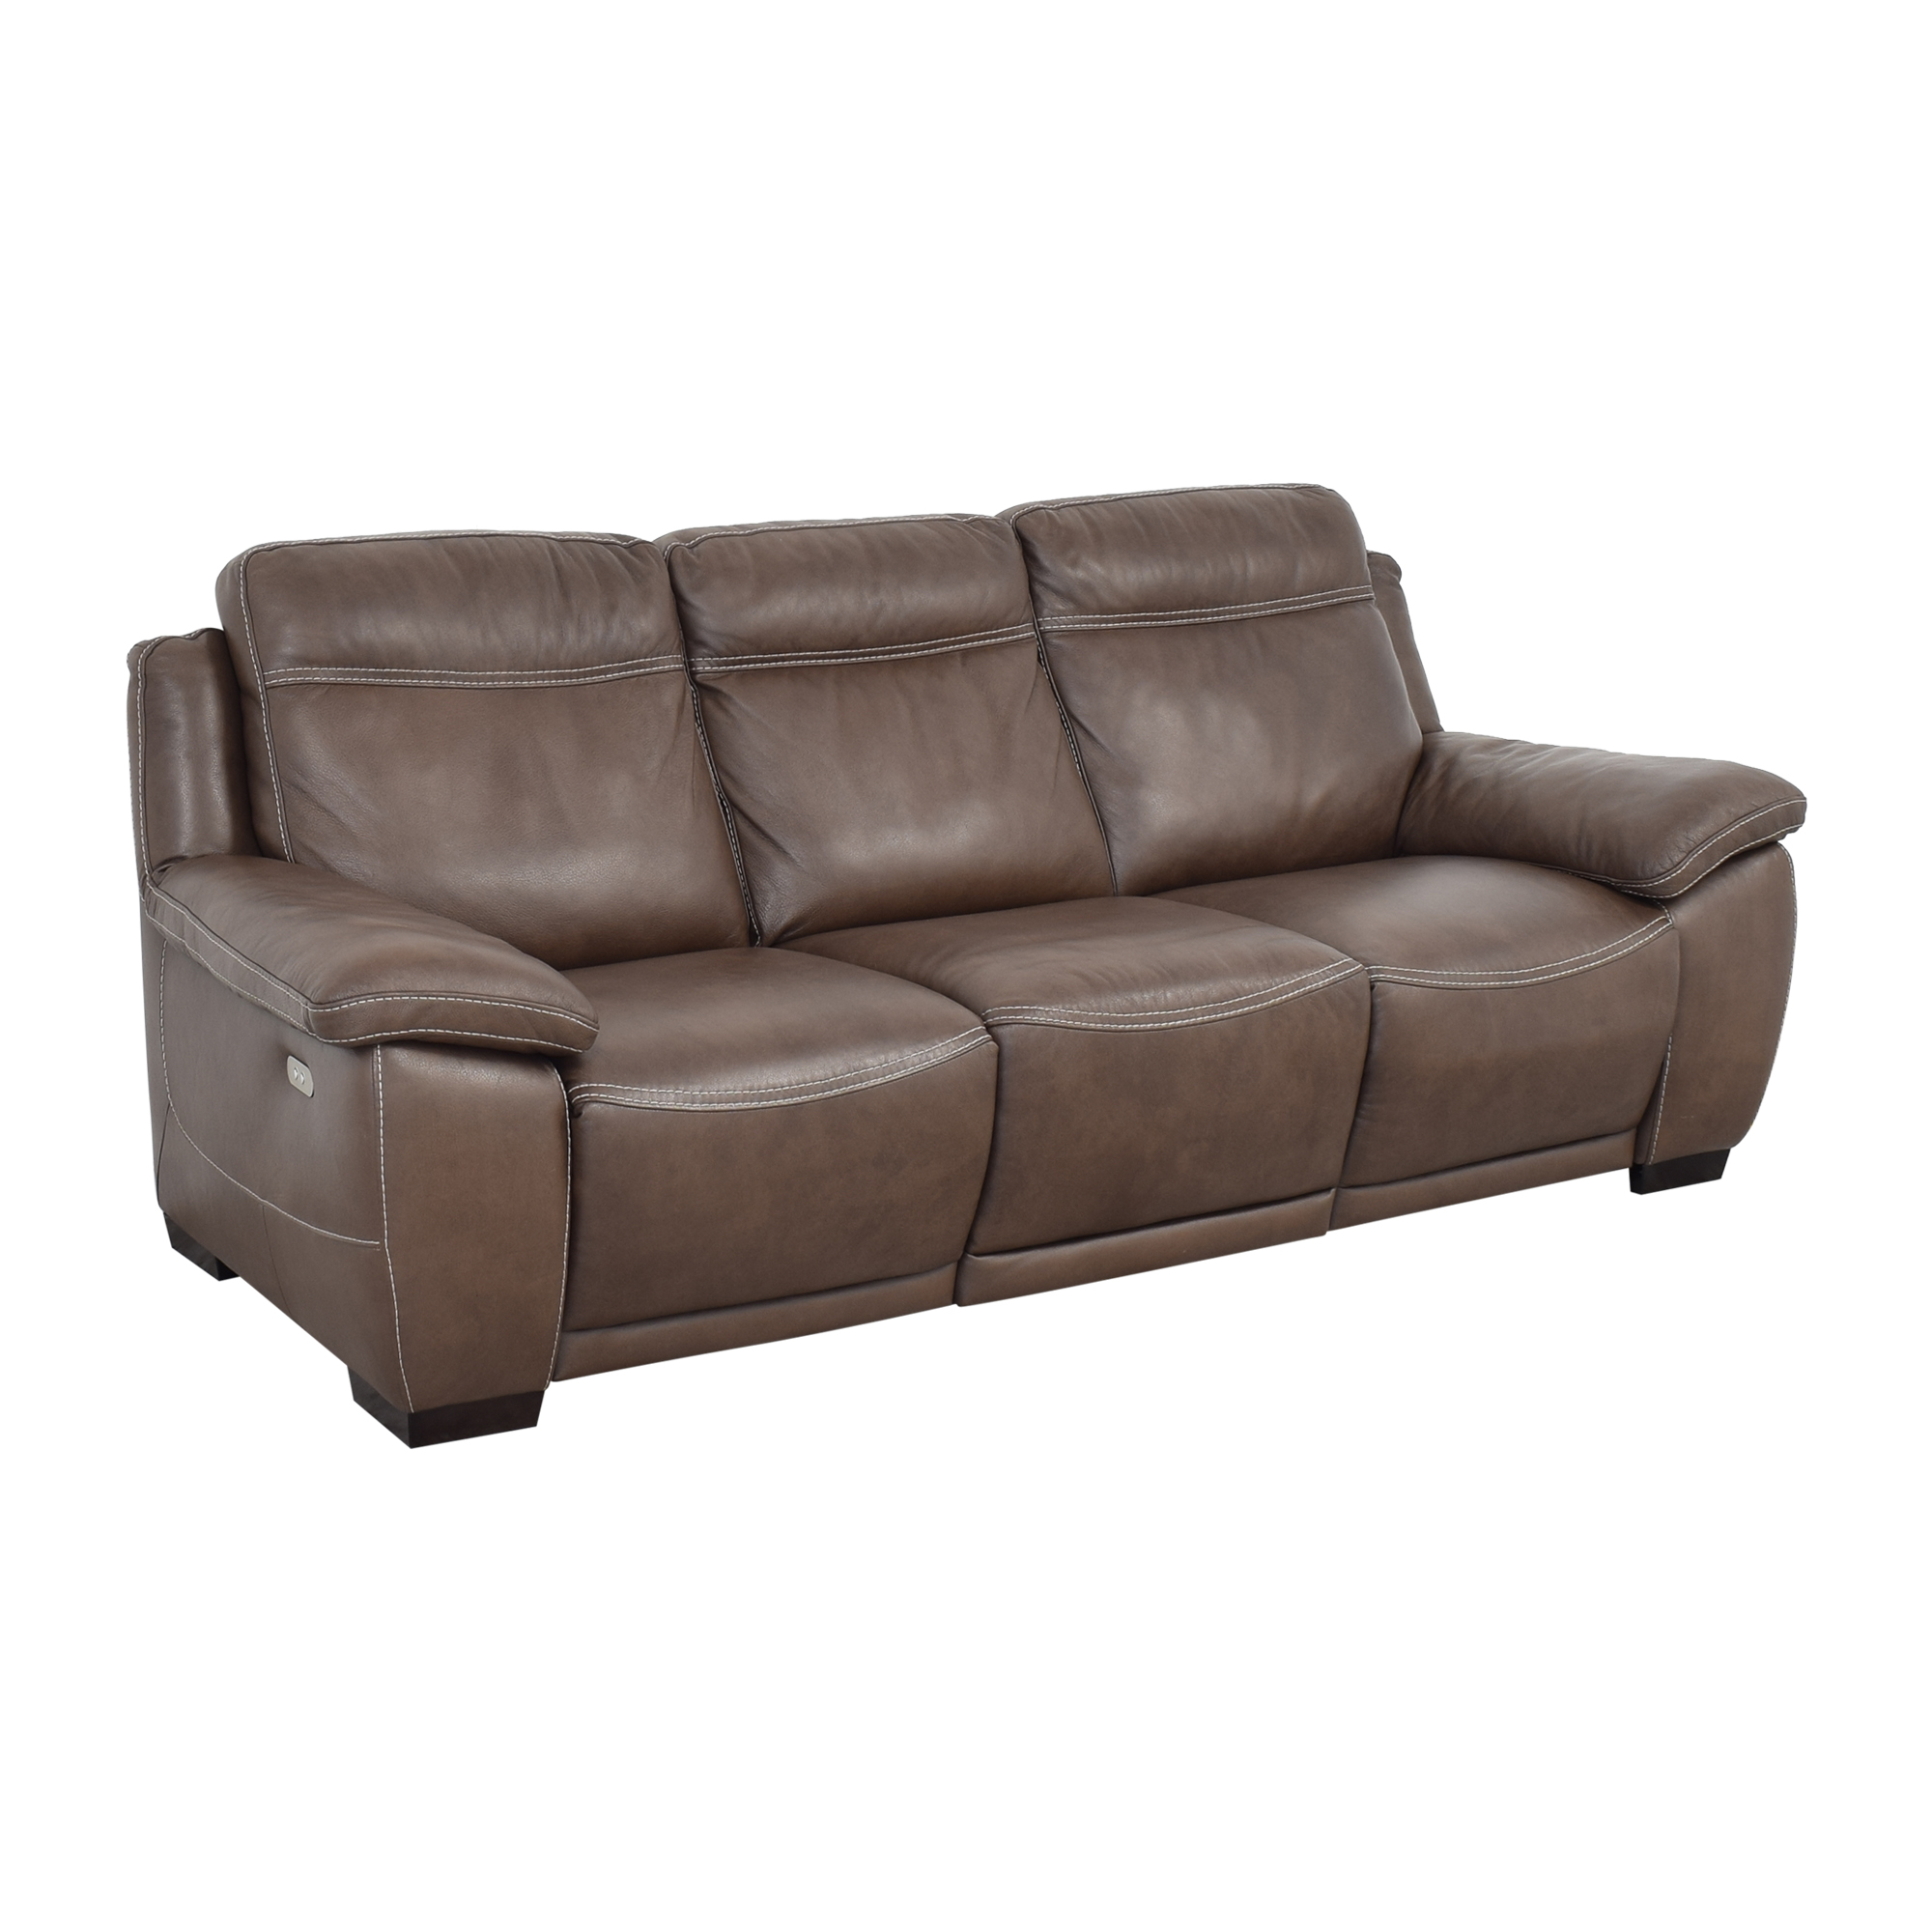 shop Raymour & Flanigan Sofa with Two Recliners Raymour & Flanigan Classic Sofas